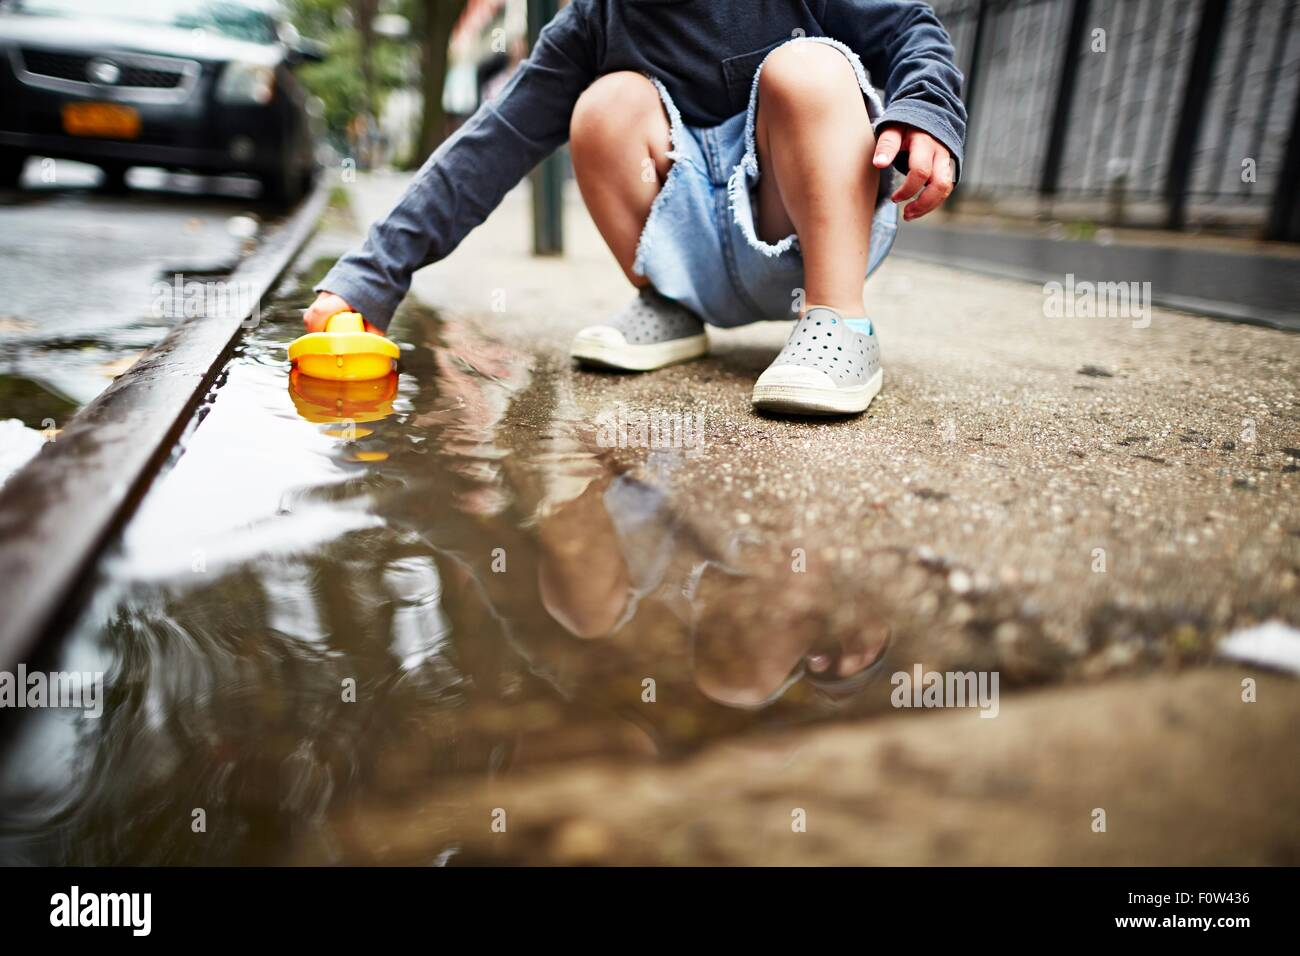 Boy playing with toy boat on water on pavement - Stock Image